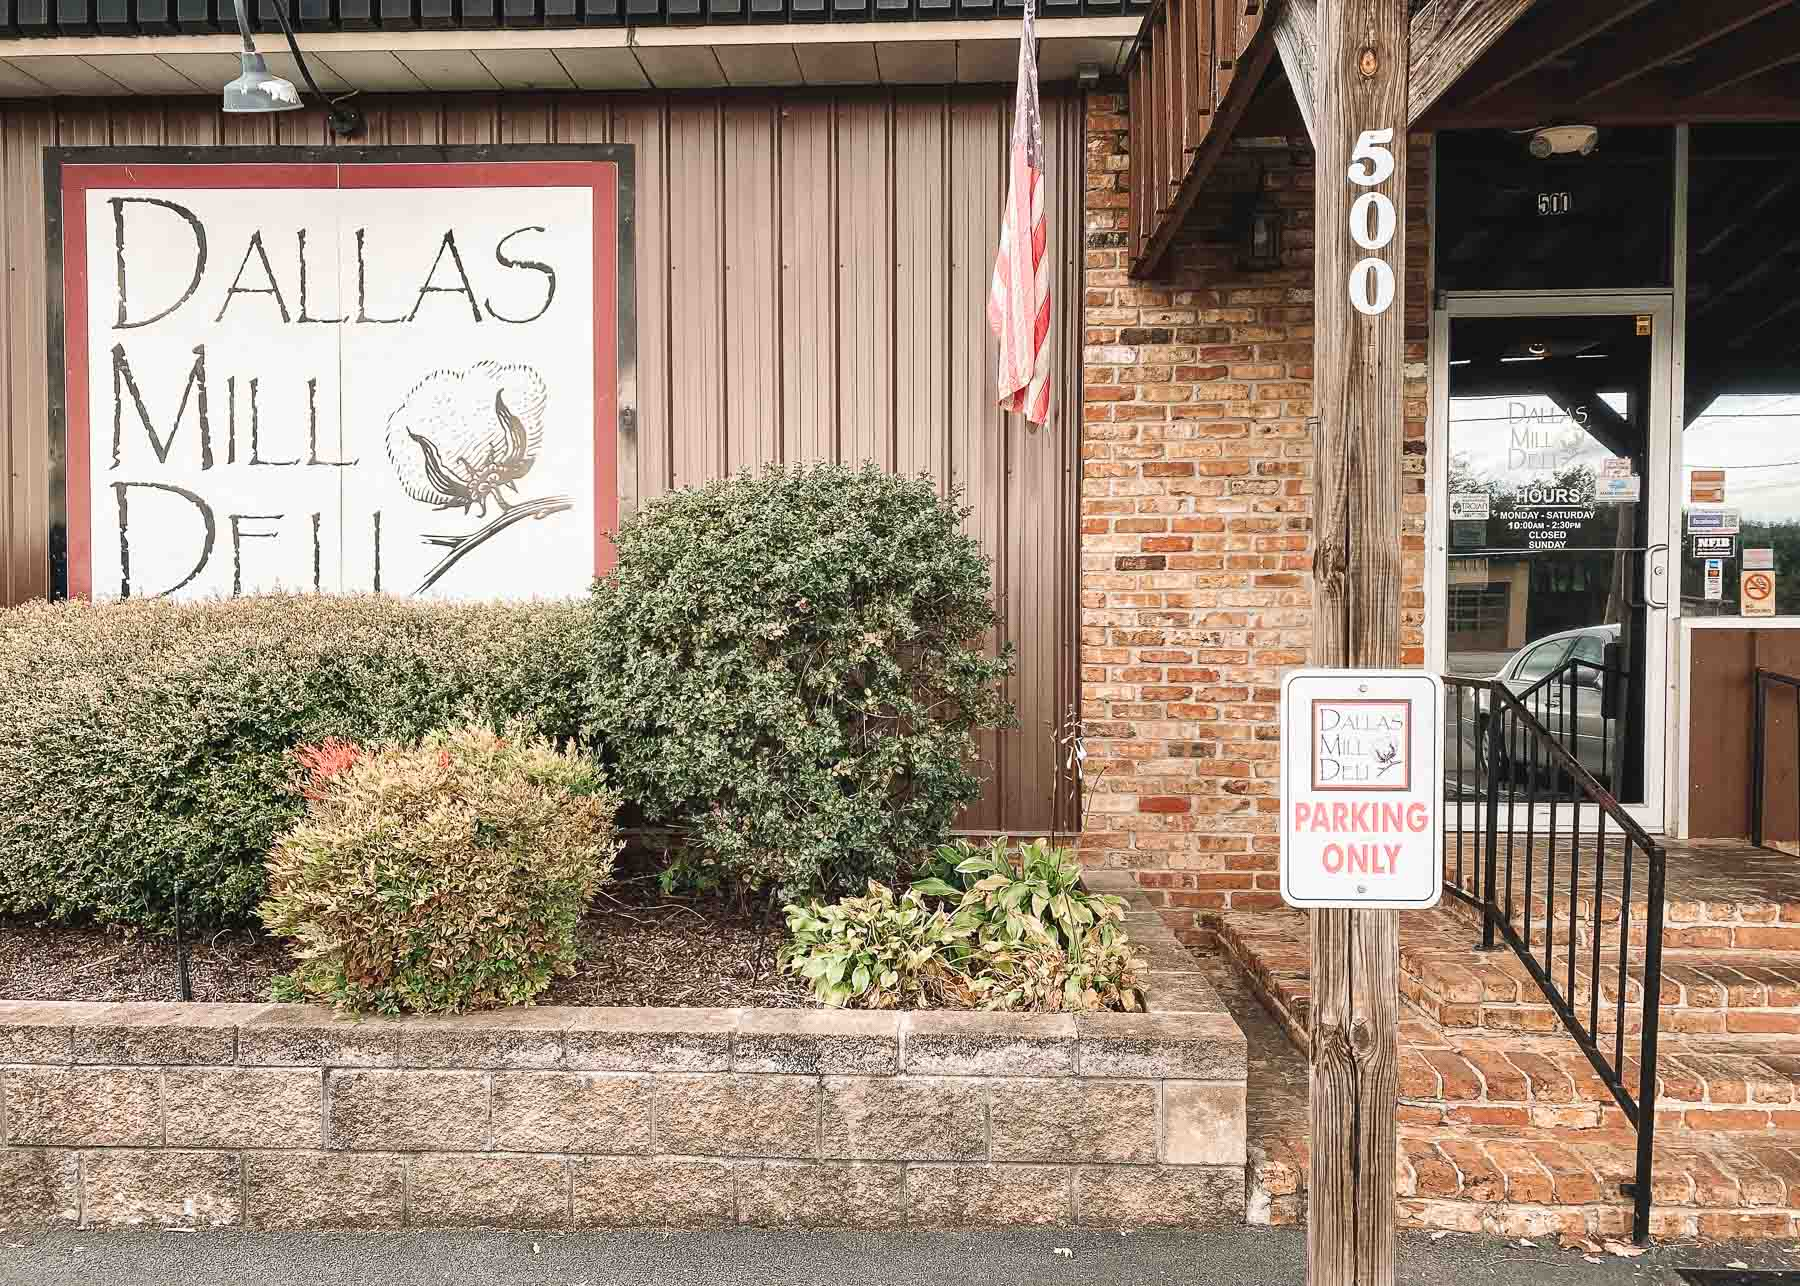 exterior of Dallas Mill Deli in Huntsville, Alabama - weekend road trip